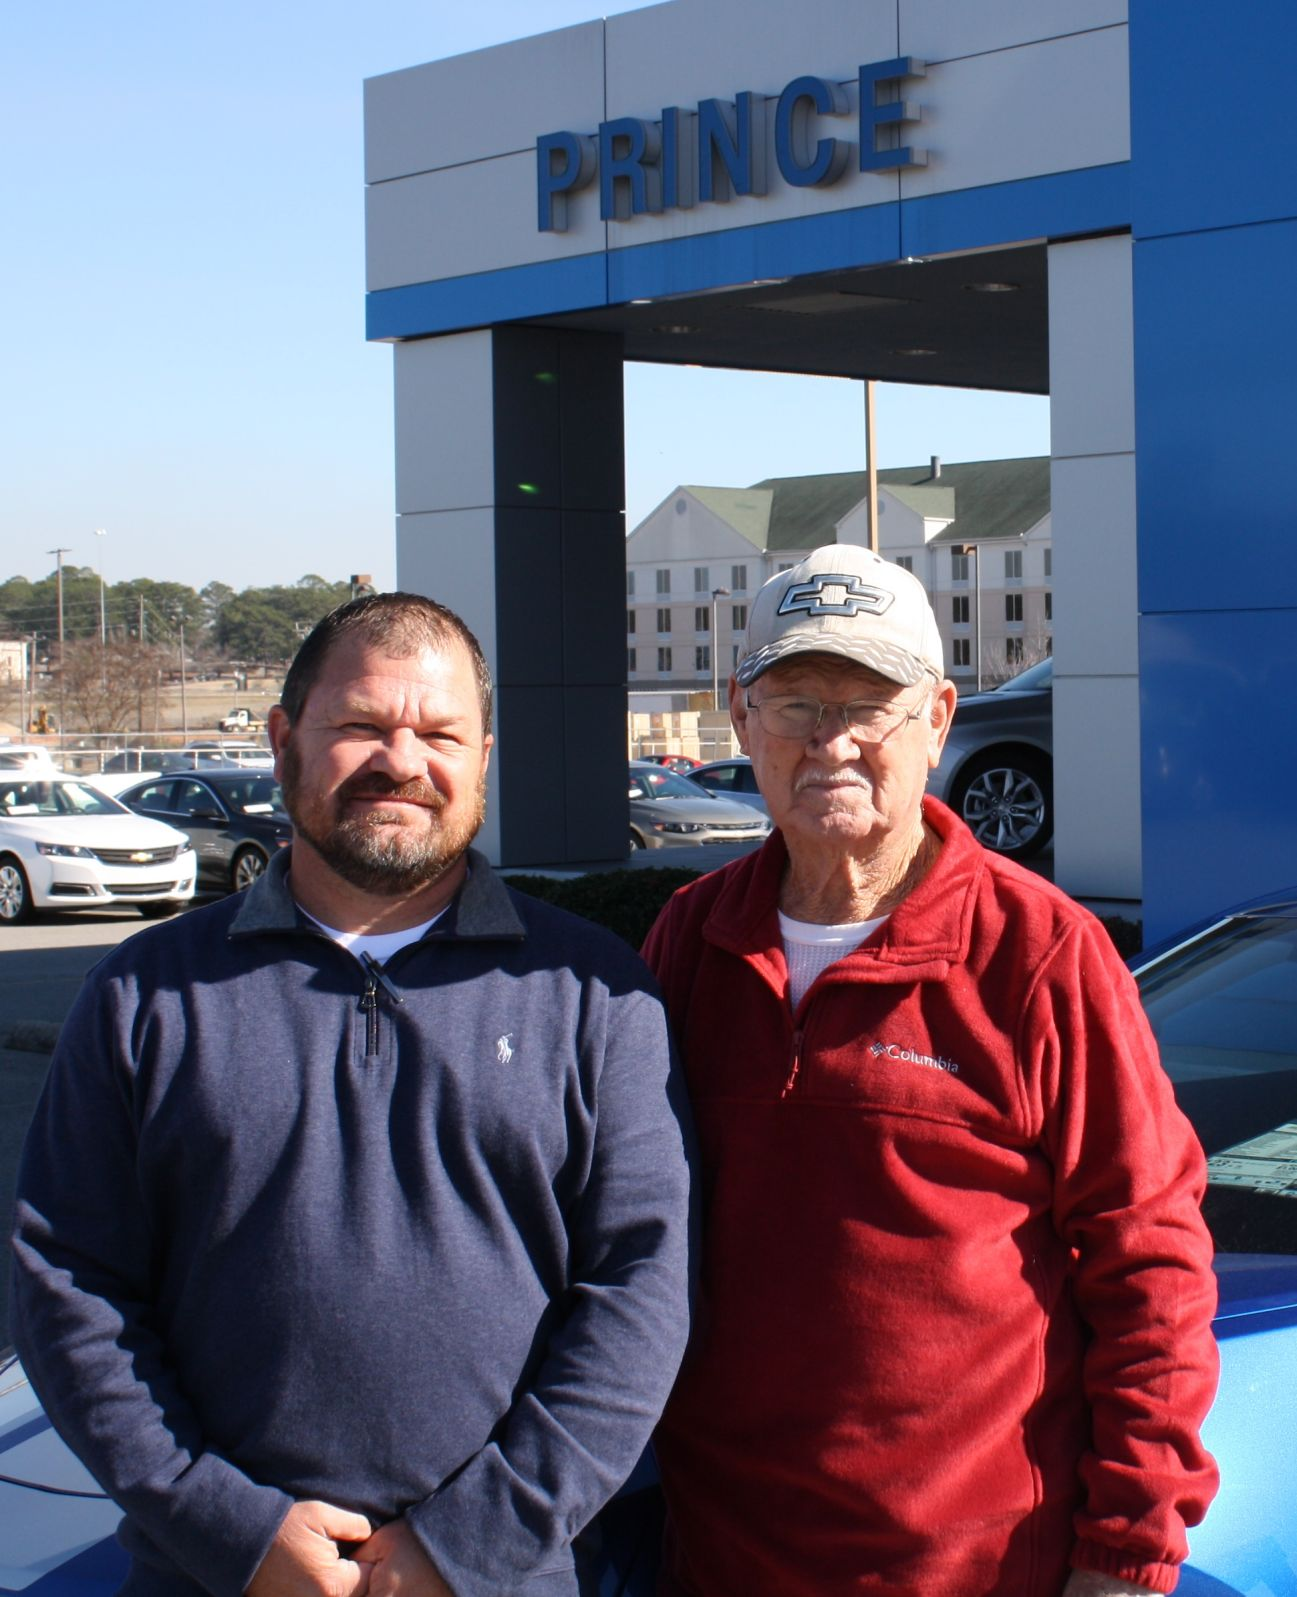 Prince Automotive Welcomes 2nd Generation Salesman